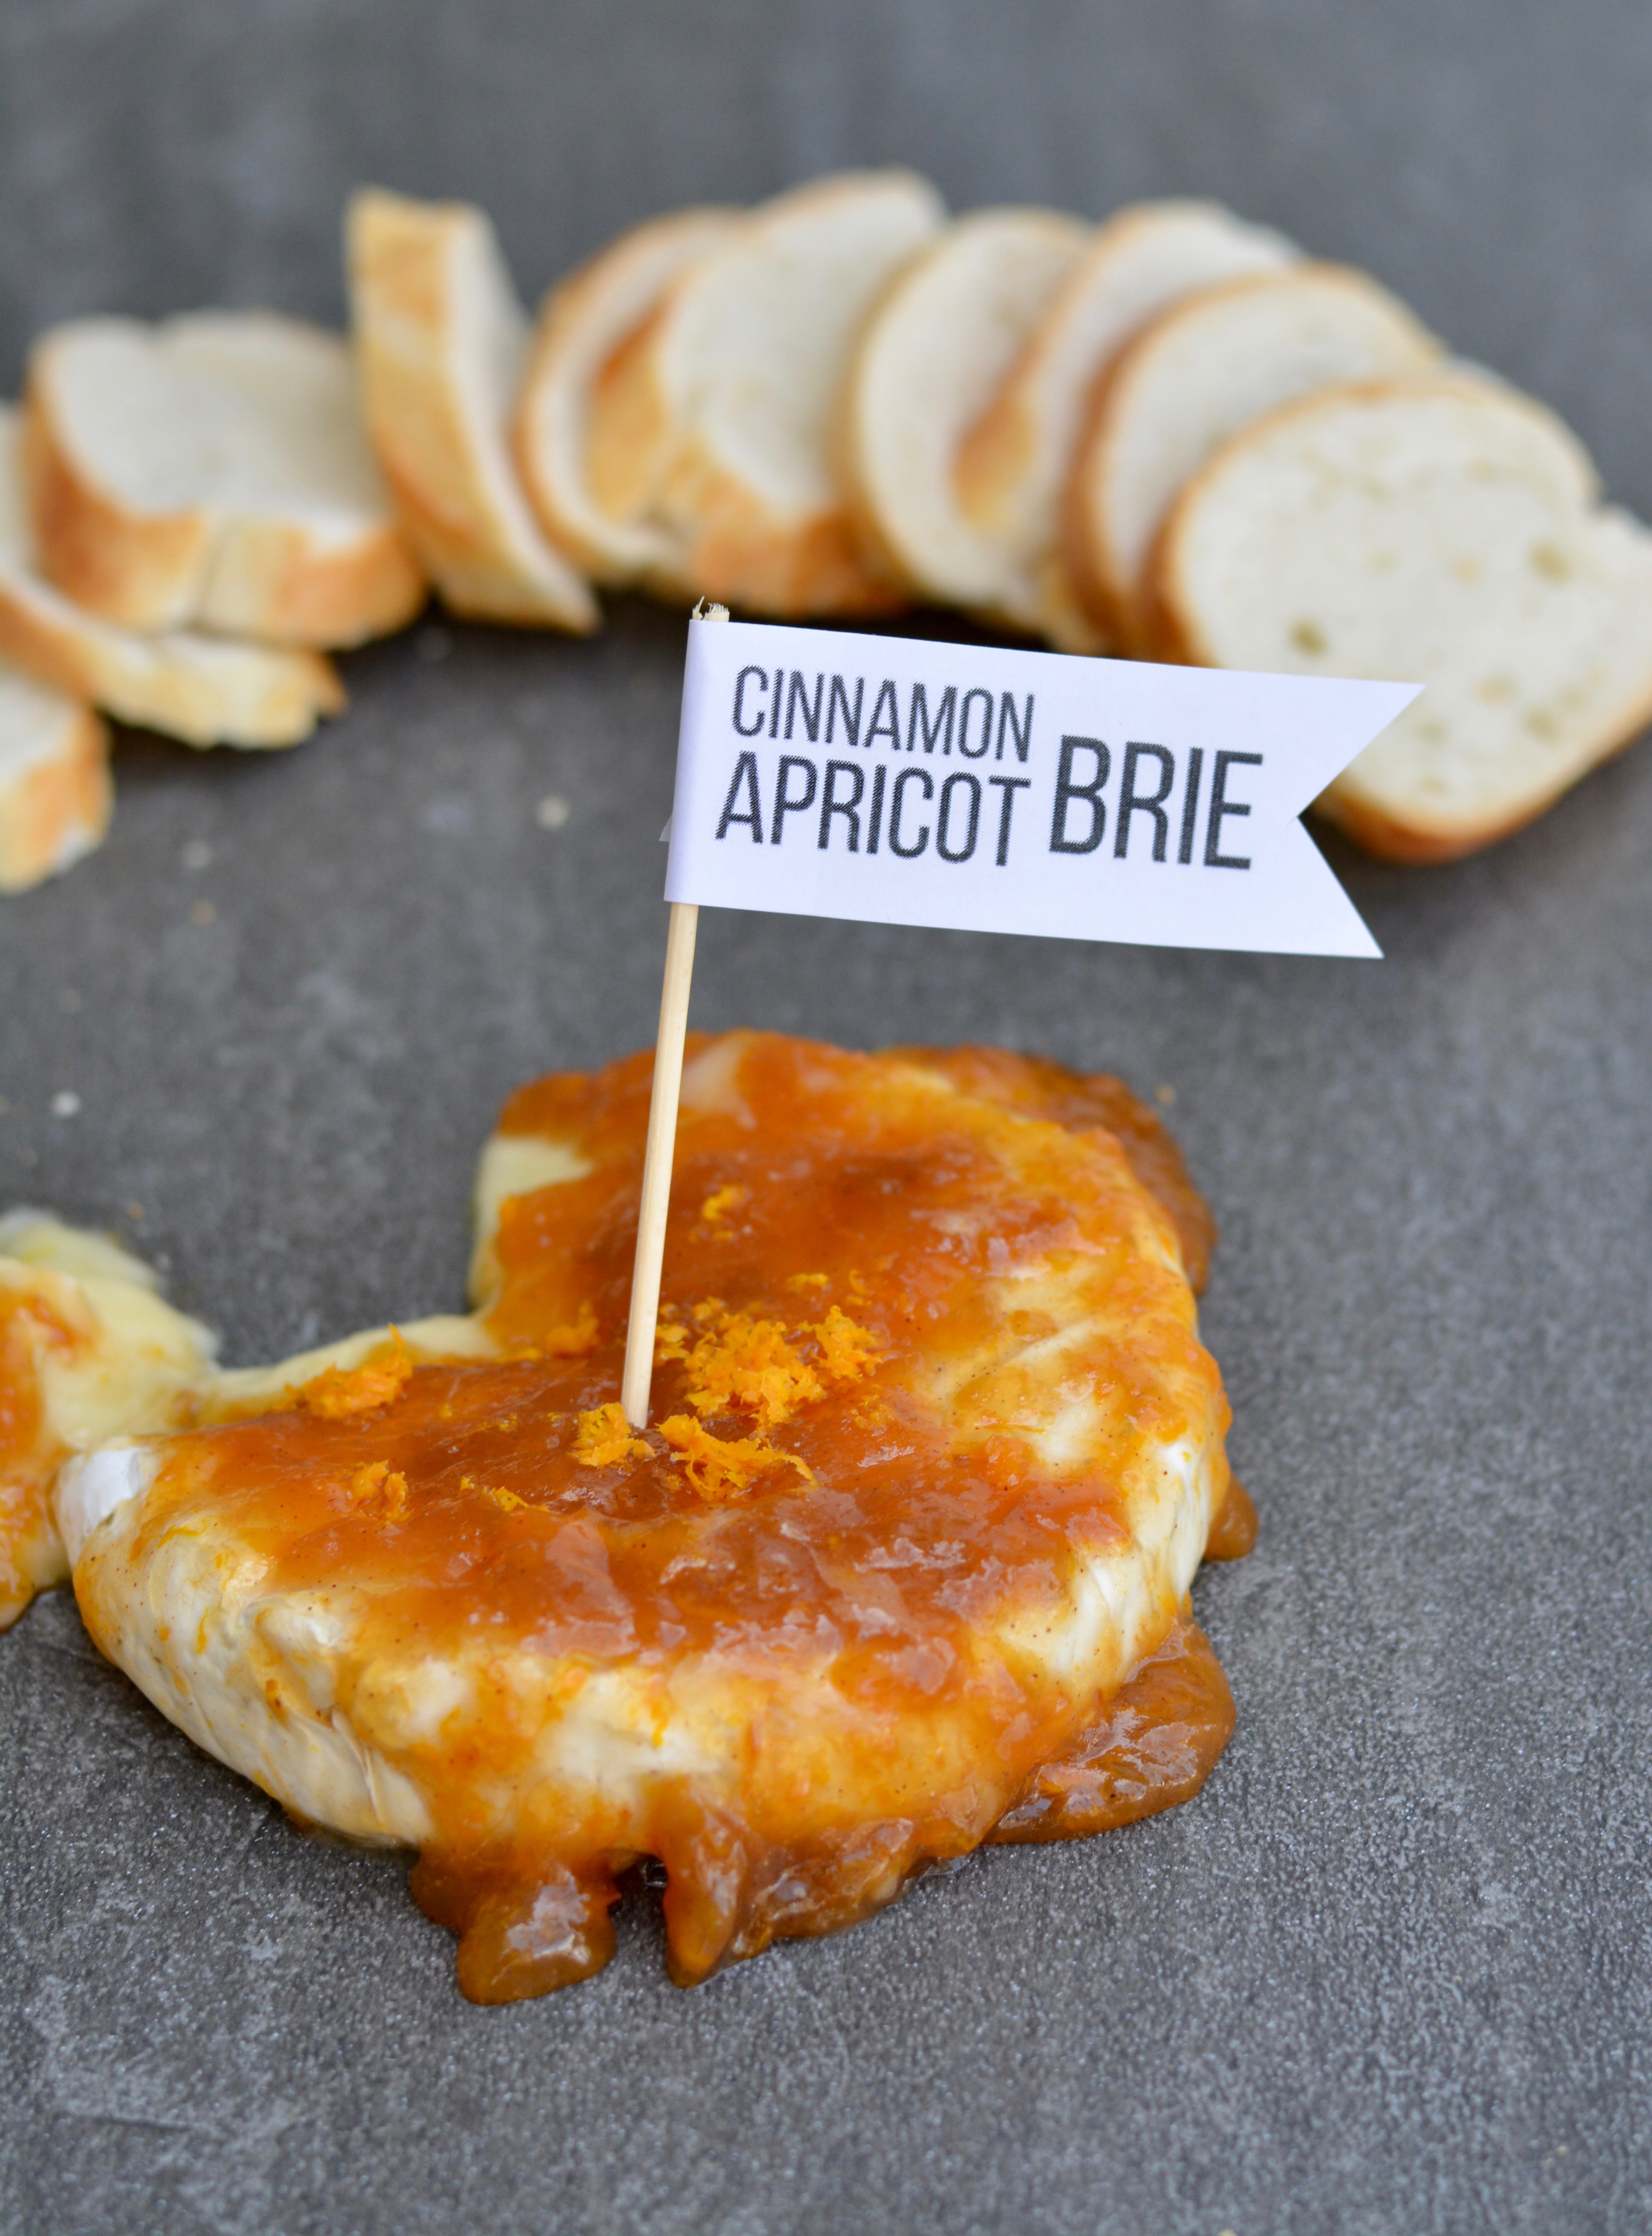 Apricot cinnamon brie cheese appetizer - crowd pleaser and super quick to prep! Creamy and sweet with a little tang, this is everyone's favorite appetizer!